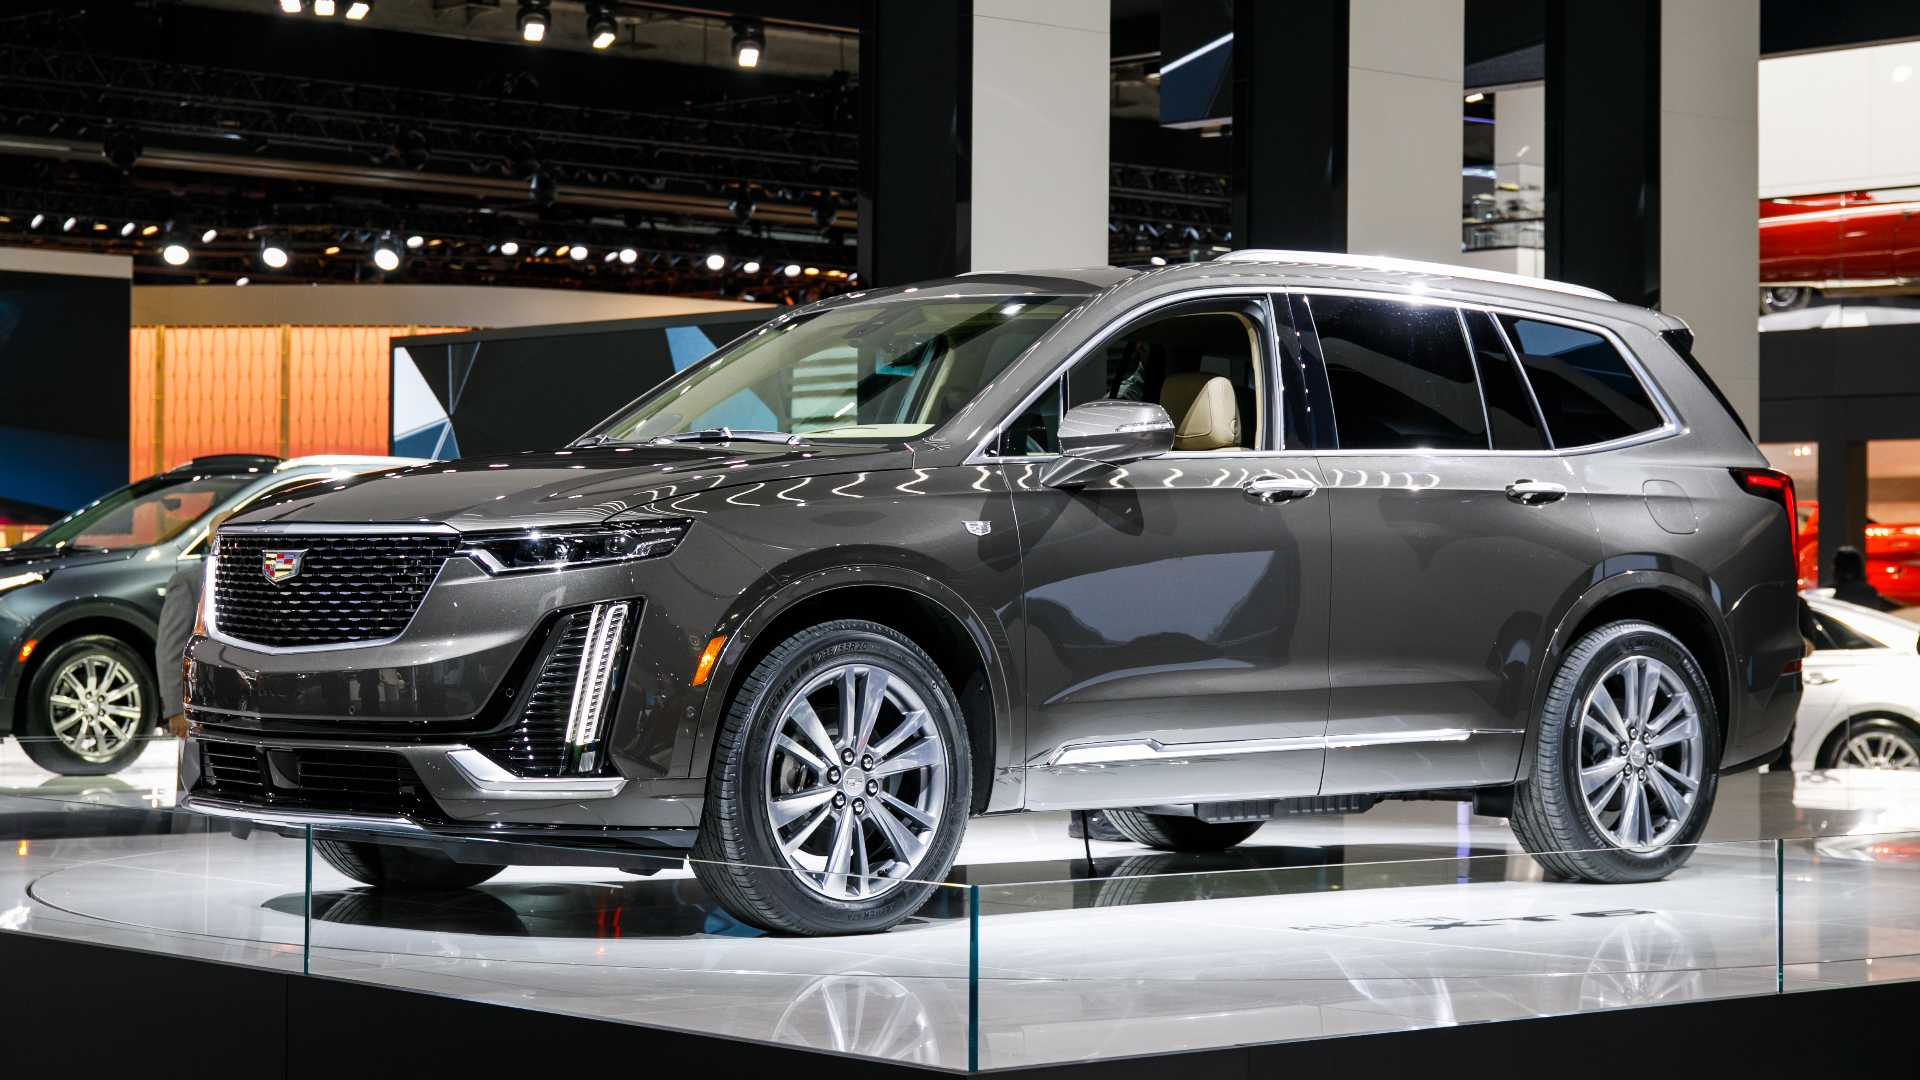 57 All New 2020 Cadillac Xt6 Availability Price for 2020 Cadillac Xt6 Availability